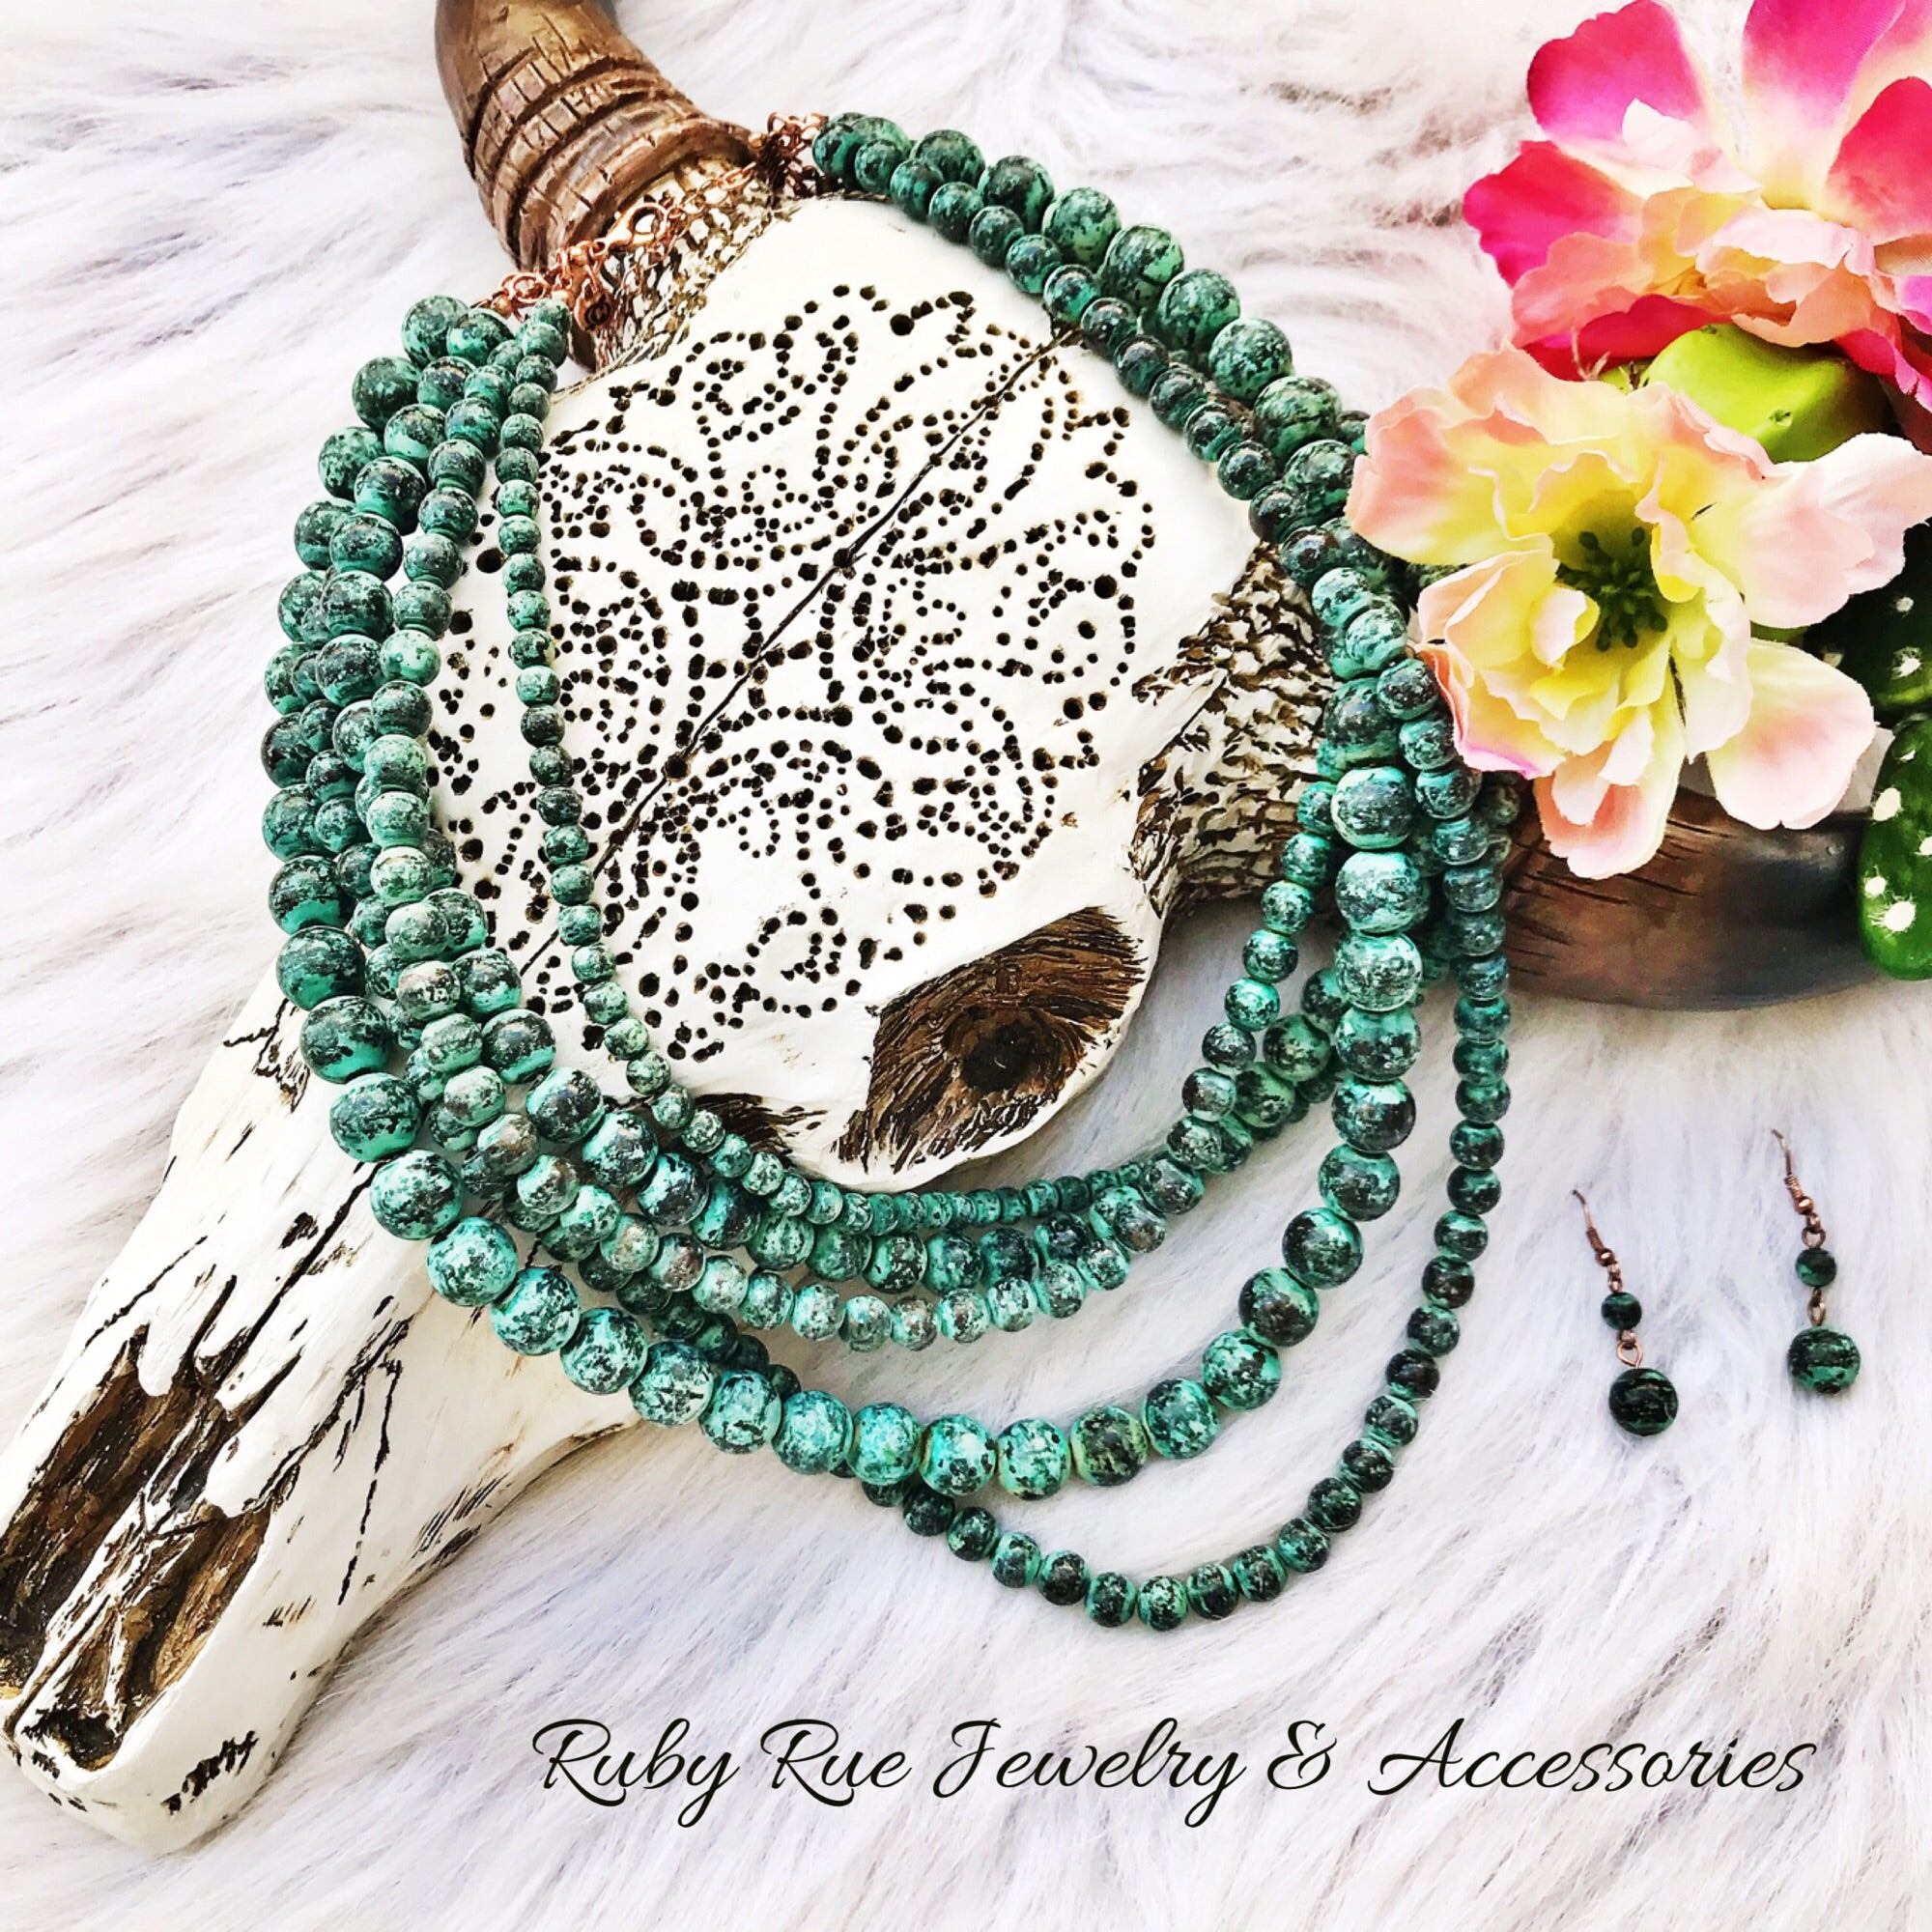 Cheeky's Patina Necklace Set - Ruby Rue Jewelry & Accessories